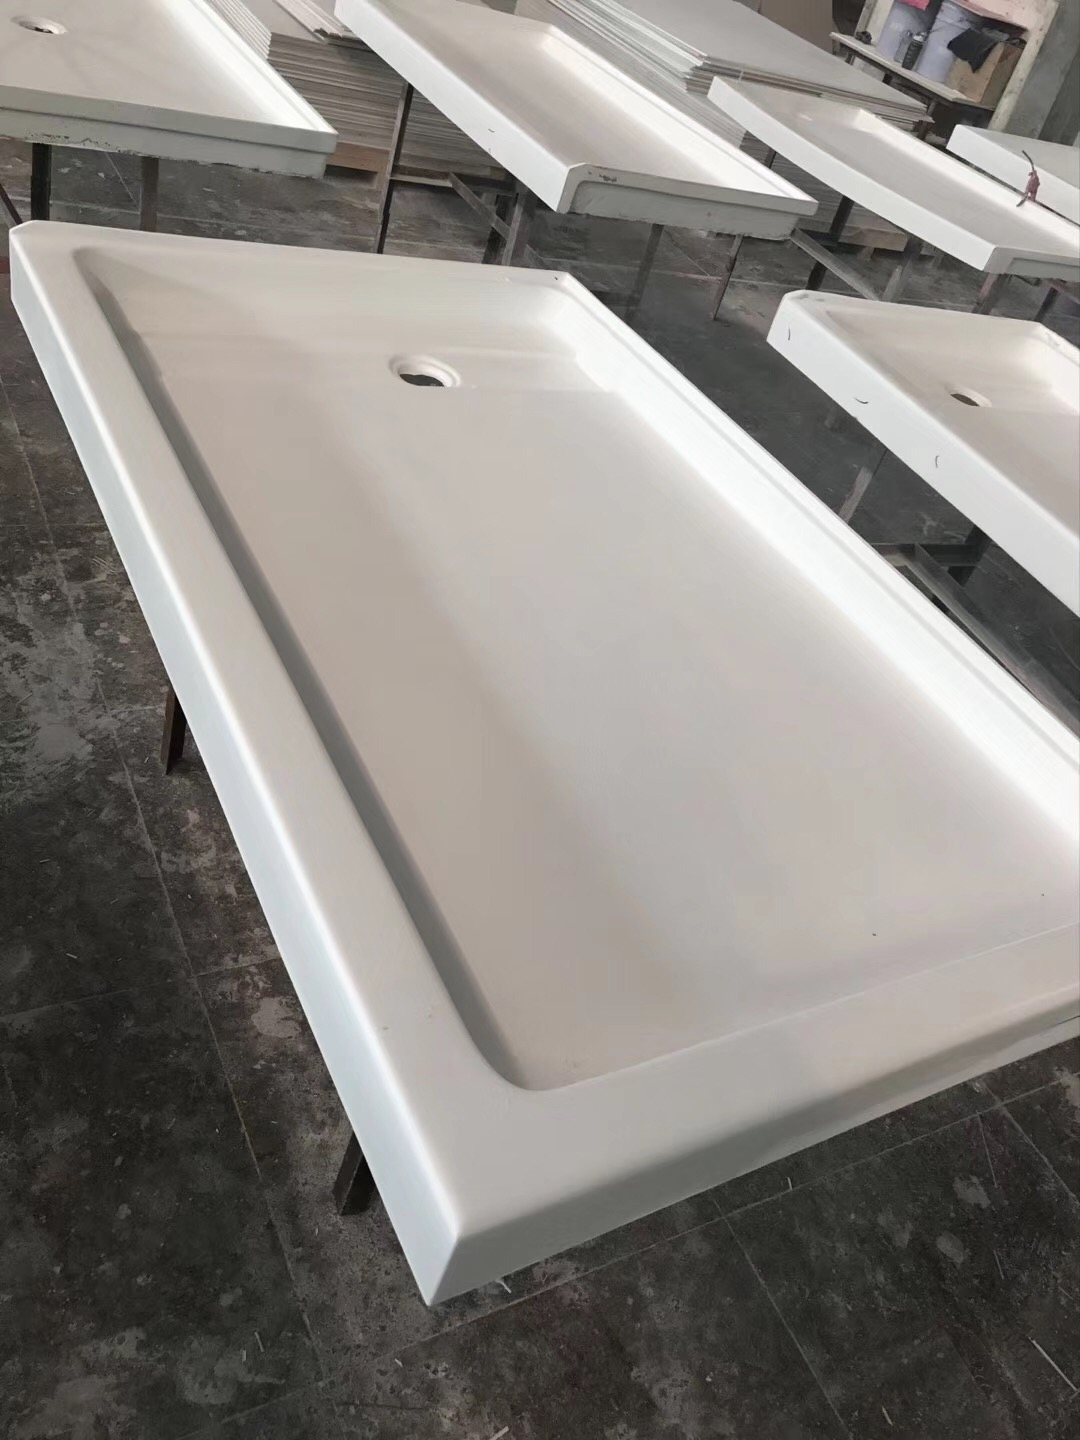 lowes marble tile,cultured marble slabs for sale,cultured marble manufacturers,faux marble bathroom,cultured marble sheets for shower,white cultured marble shower